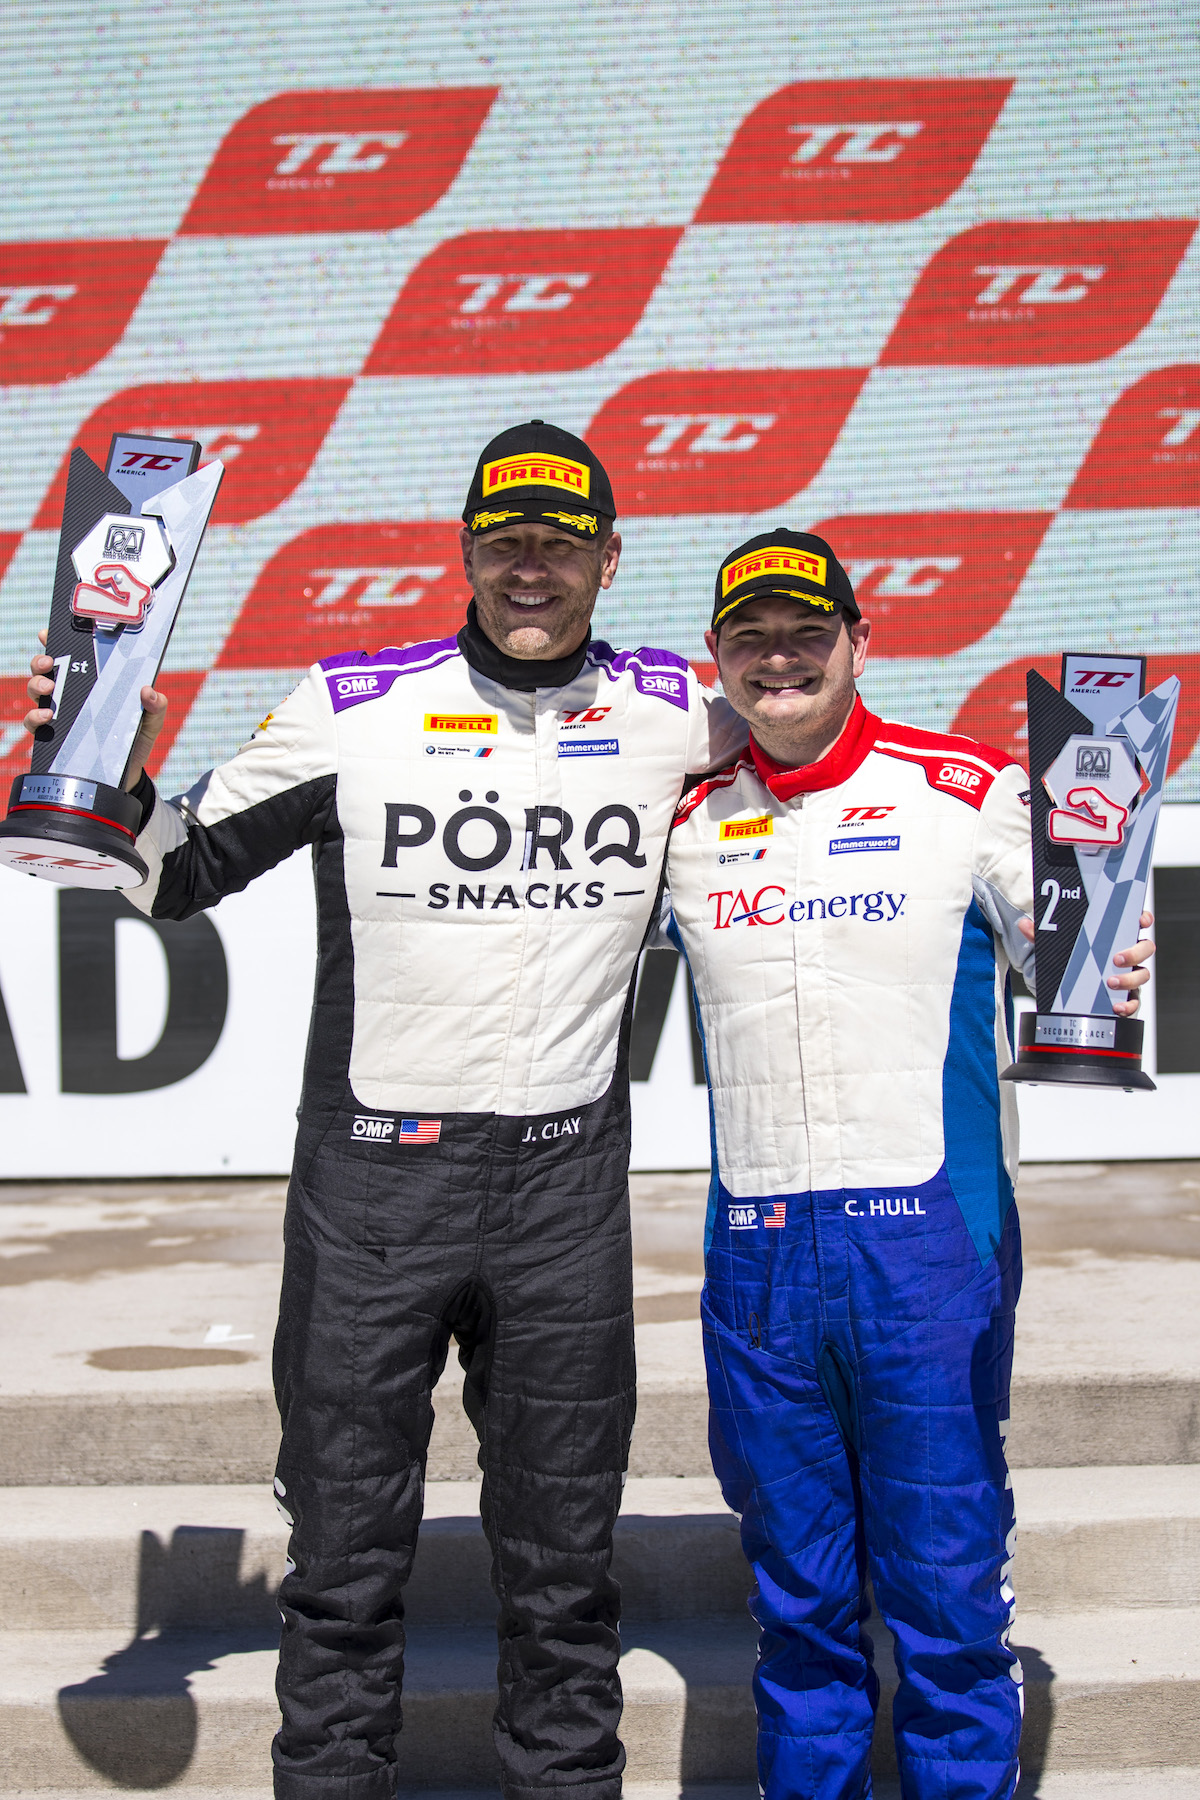 James Clay and Chandler Hull on the podium with first and second at Road America